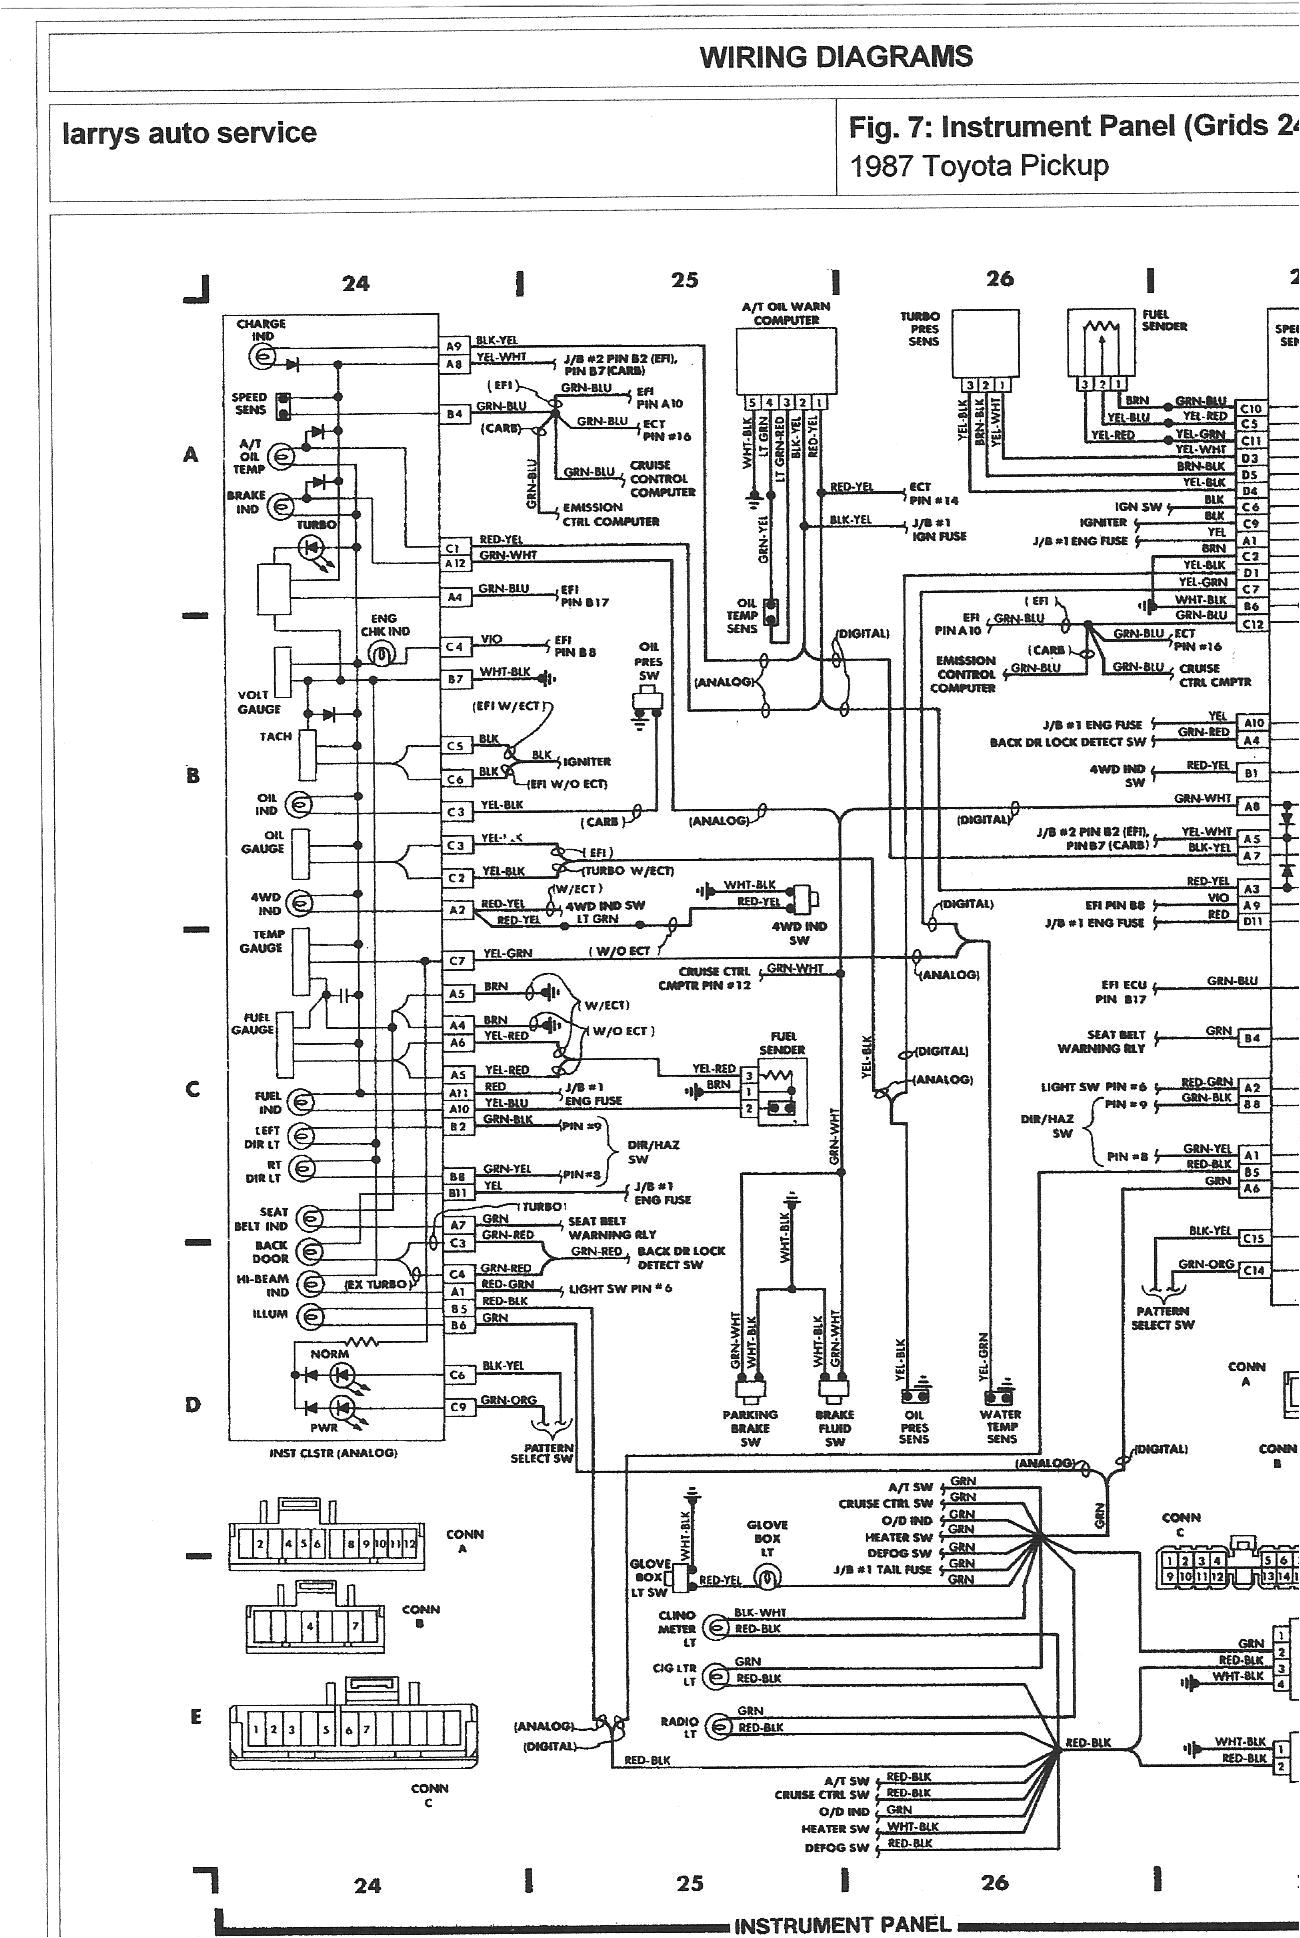 1980 toyota pickup wiring harness online manuual of wiring diagram 1989 toyota pickup wiring harness wiring